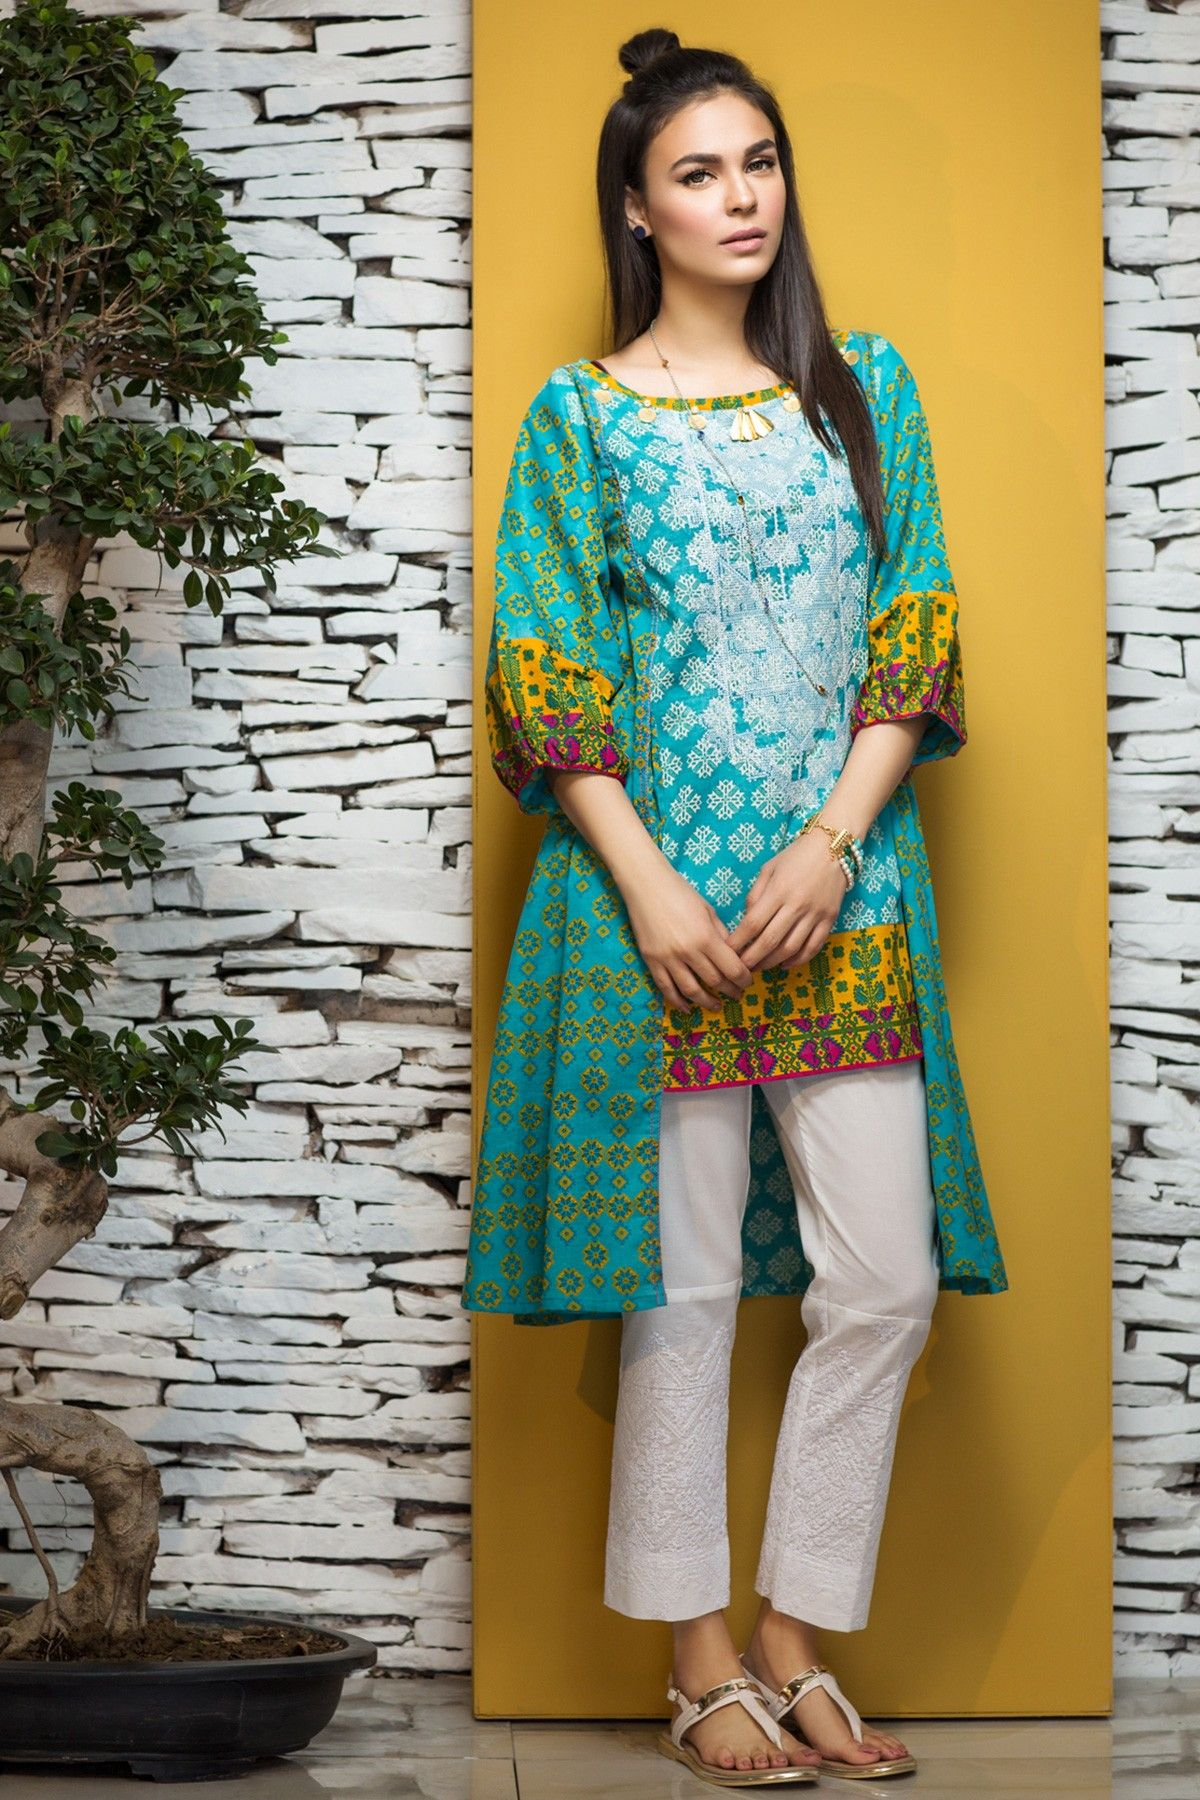 ccfa8567c6 Embroidered- khaadi Latest Summer Lawn Dresses Collection 2017-2018 (8)